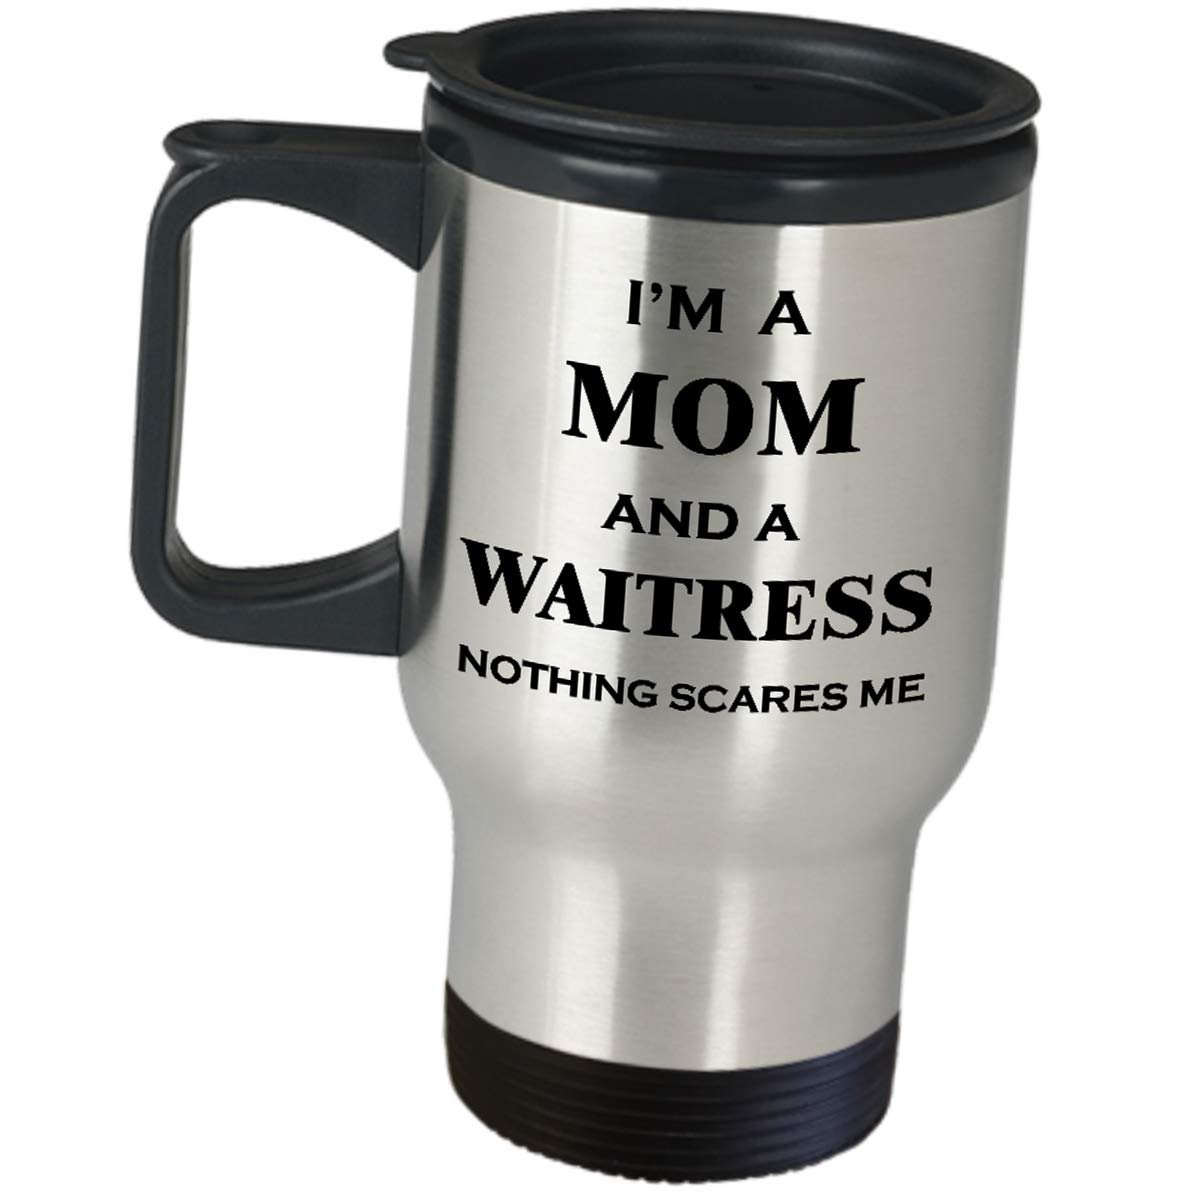 Waitress Travel Mug Gift - Im A Mom And Nothing Scares Me - Stainless Steel Insulated Coffee Tumbler Fun Job Pride Gifts Restaurant Cafeteria Food Order Taker For Women Wife Mother Server Funny Gag